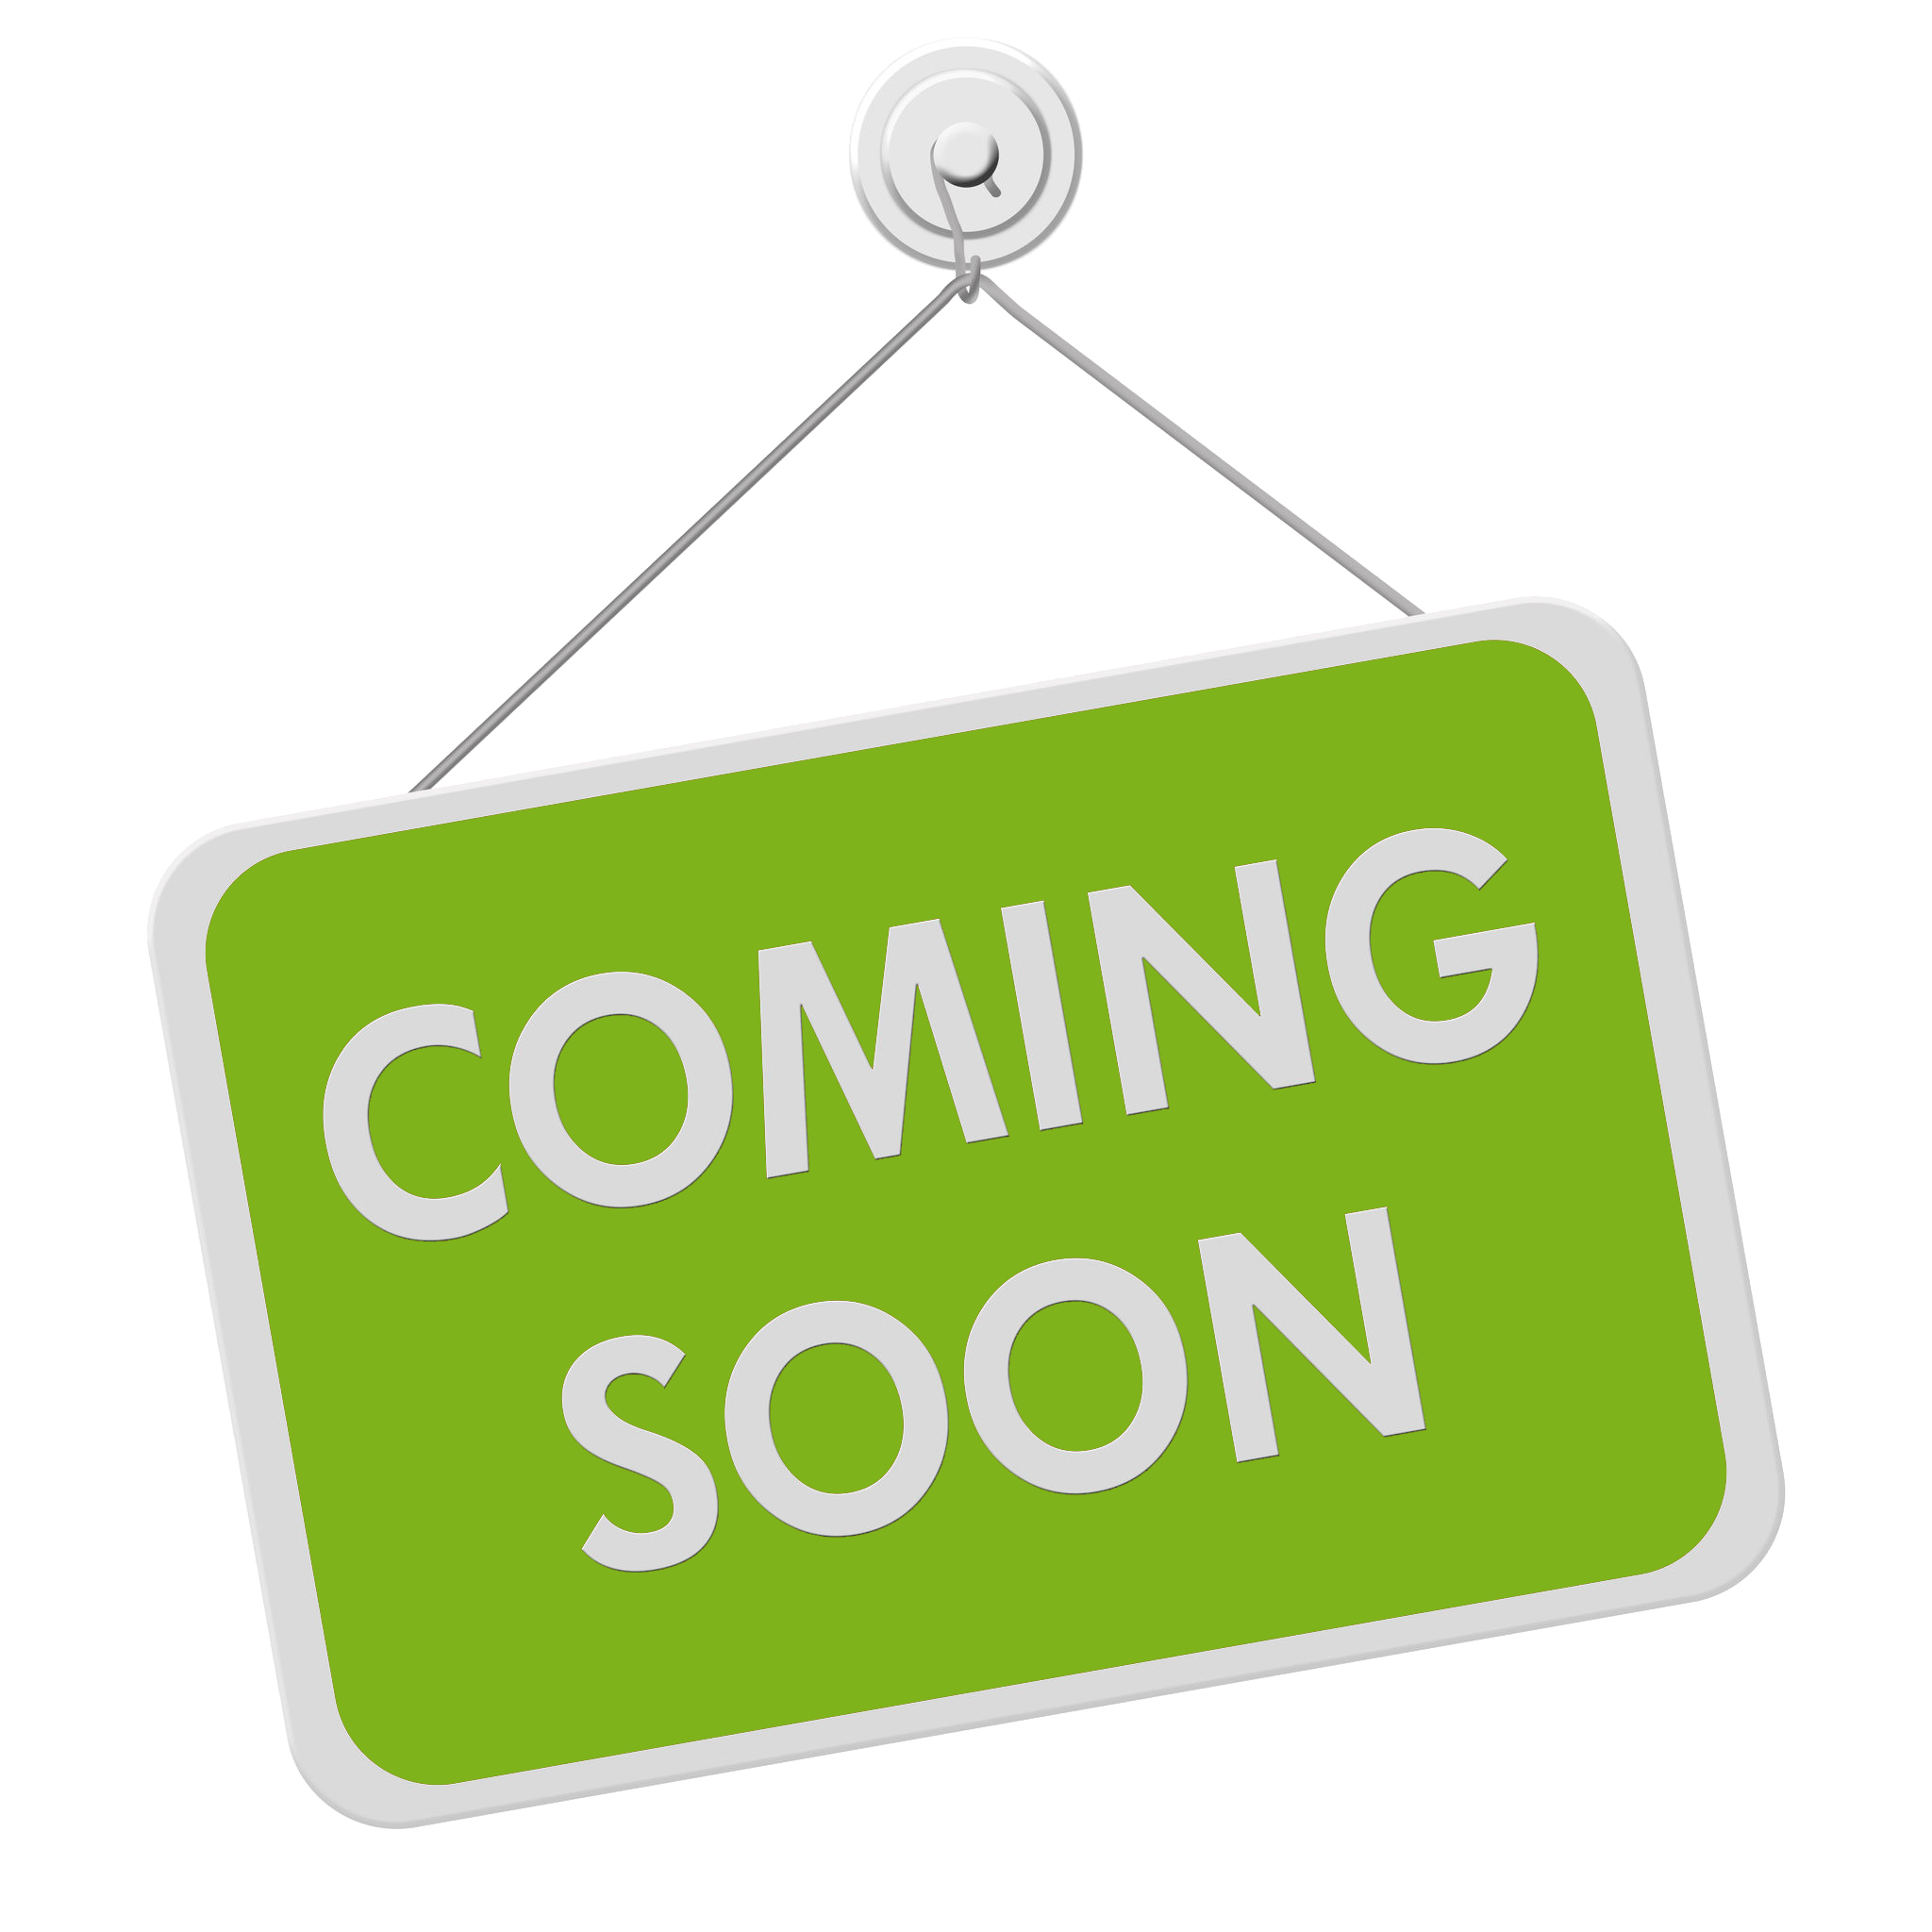 Coming soon png images. San francisco recreation and